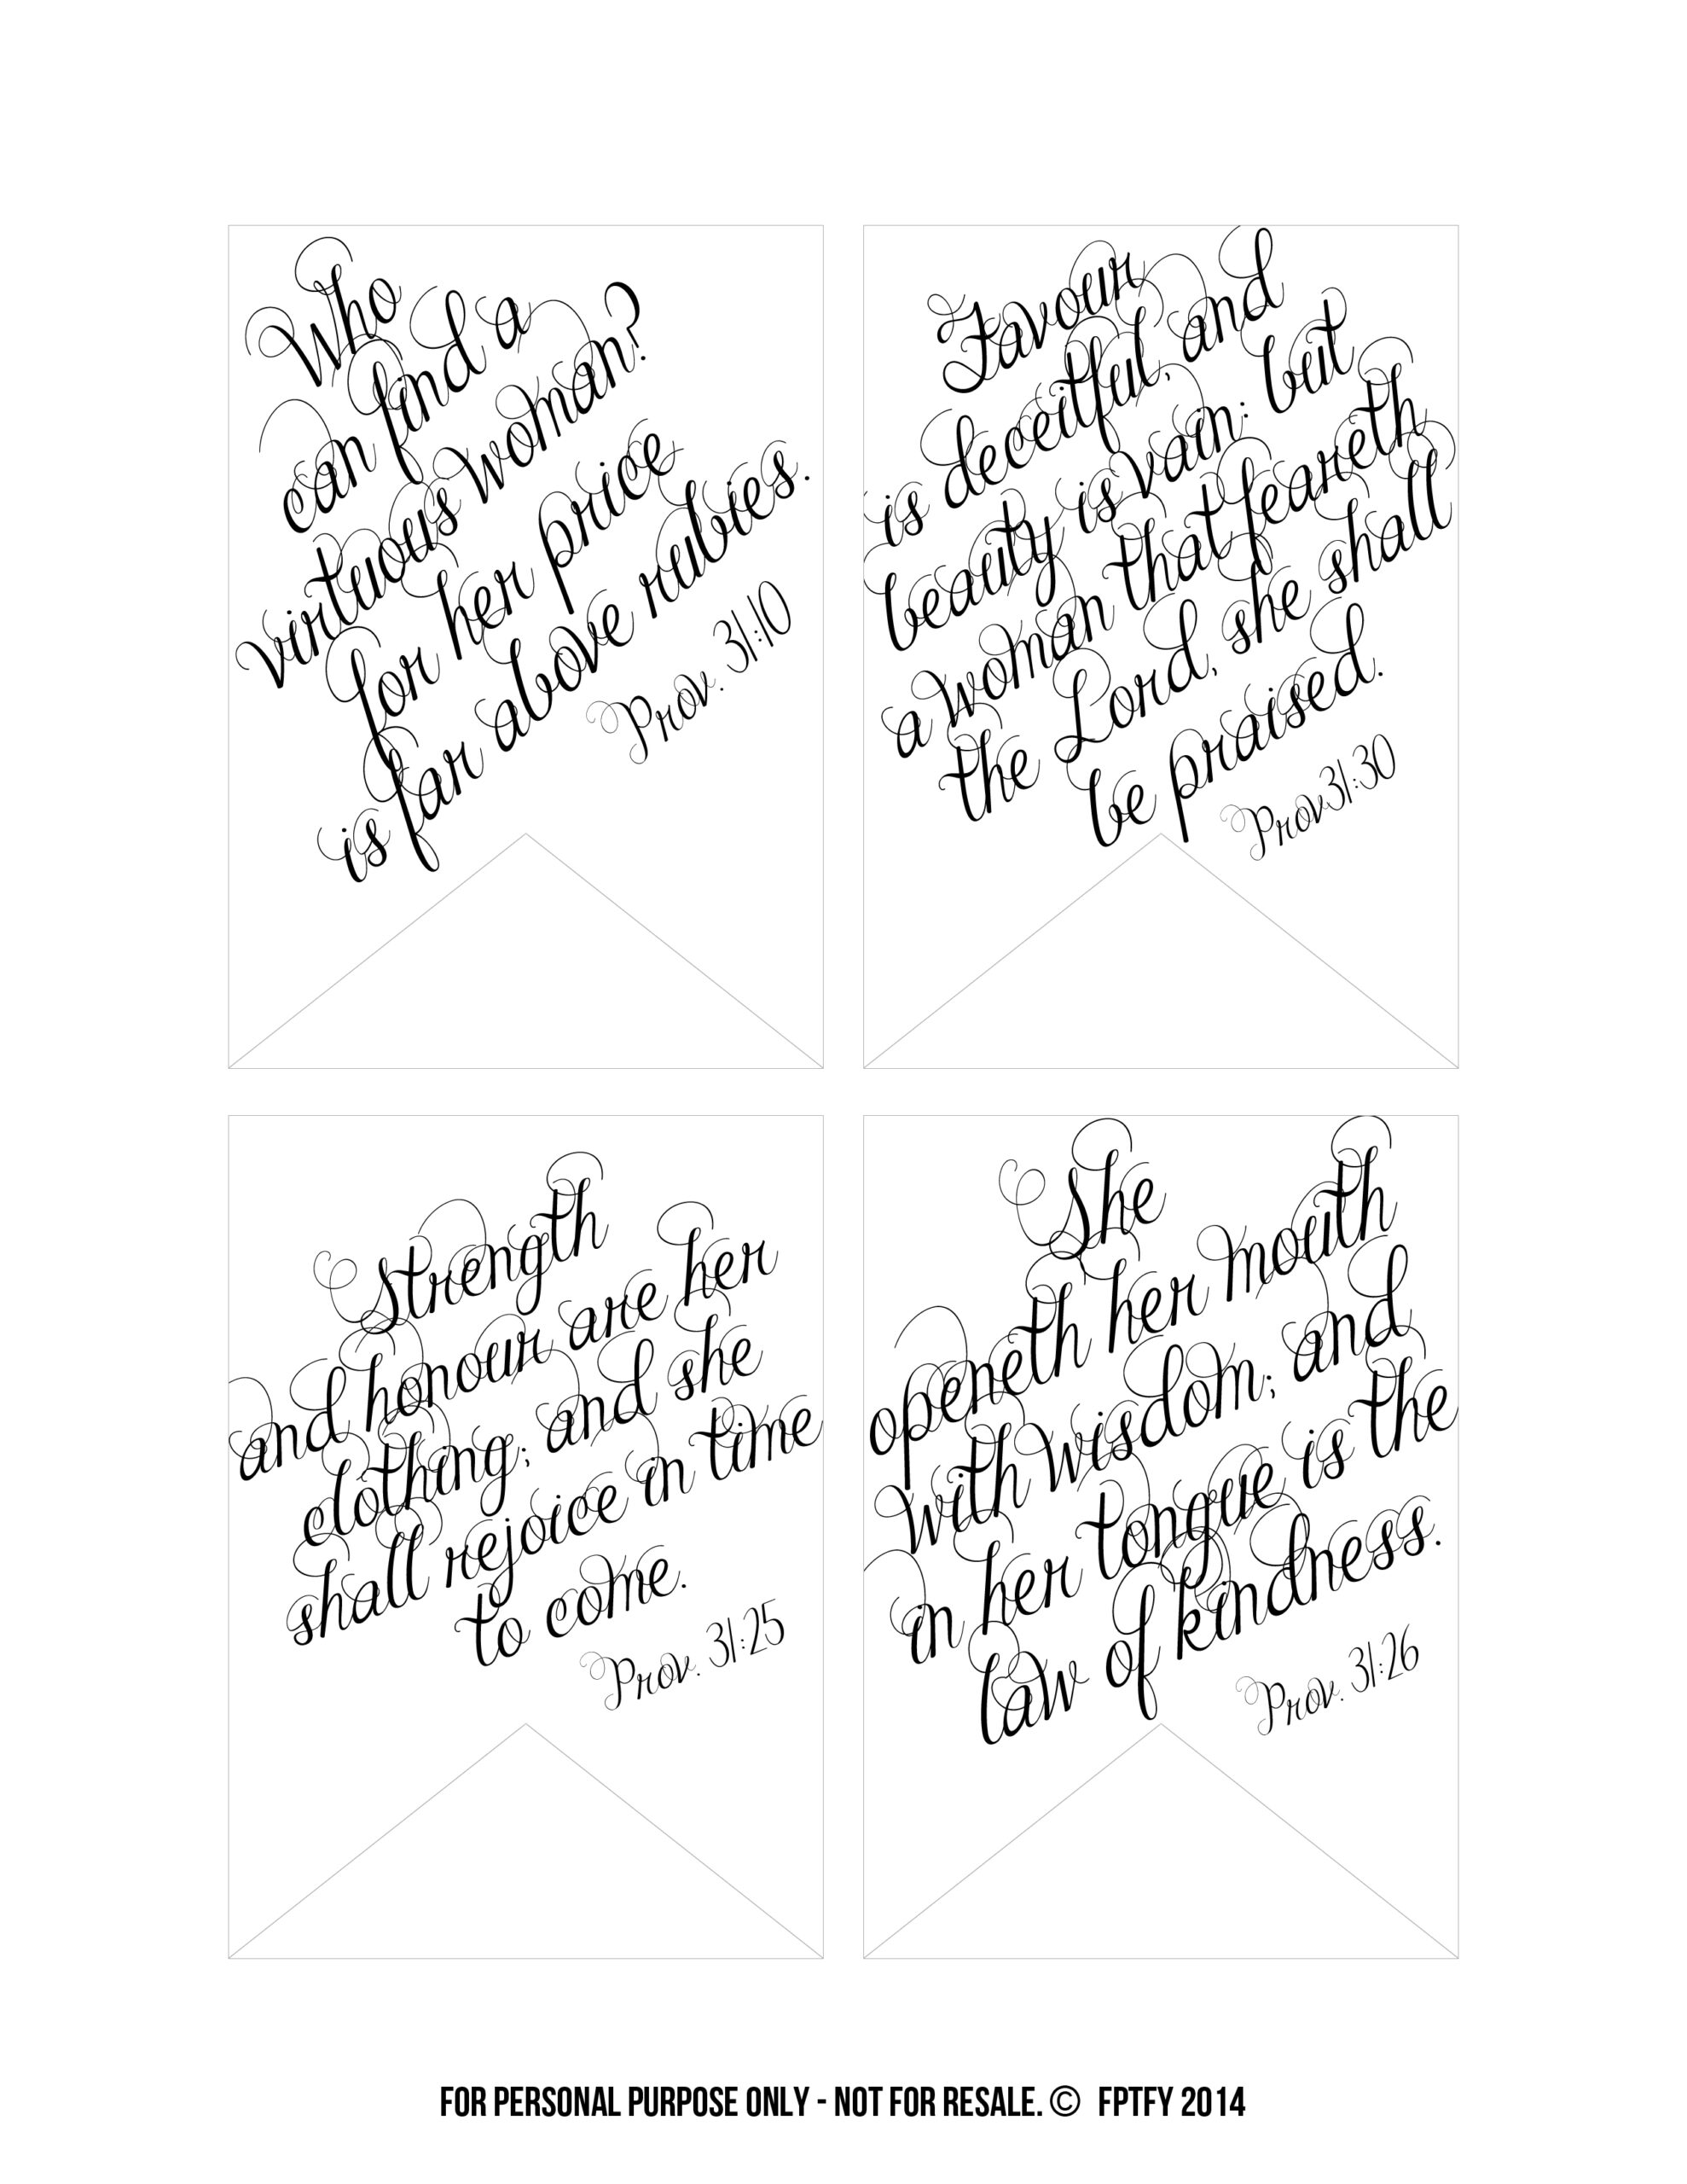 graphic relating to Free Printable Scripture Verses called Printable Bible Verses: Proverbs 31 Tags - Cost-free Wonderful